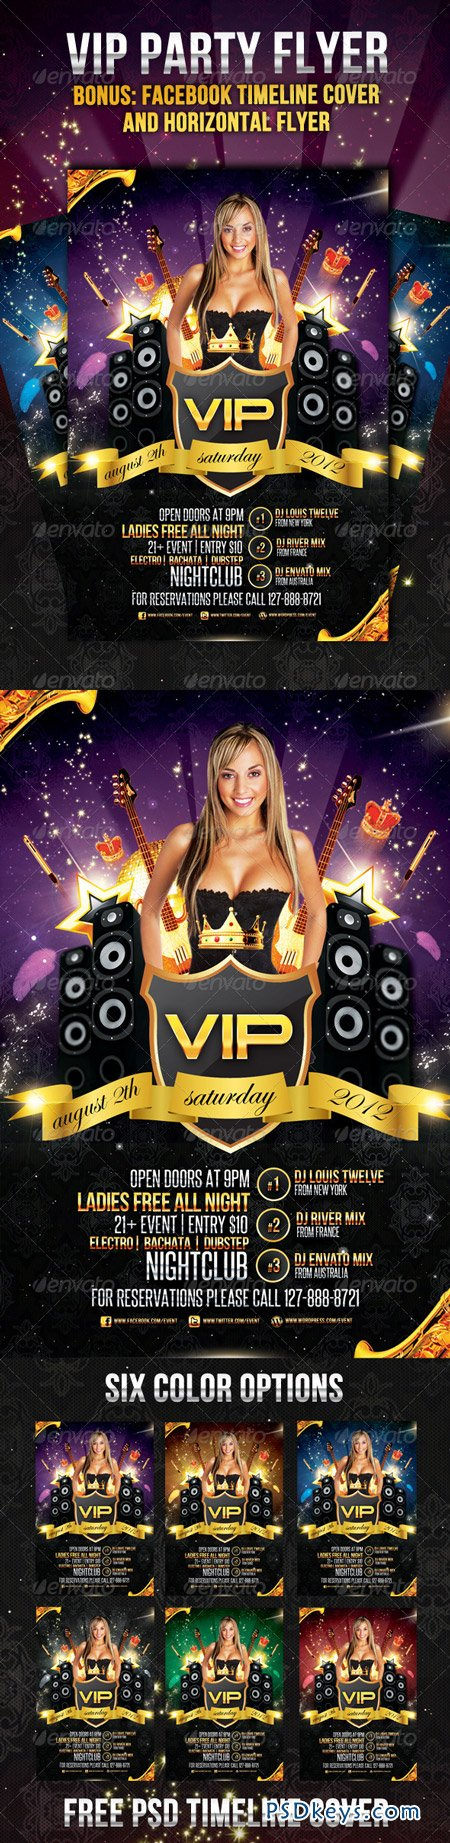 VIP Party Flyer Vertical & Horizontal with Timeline 2257759